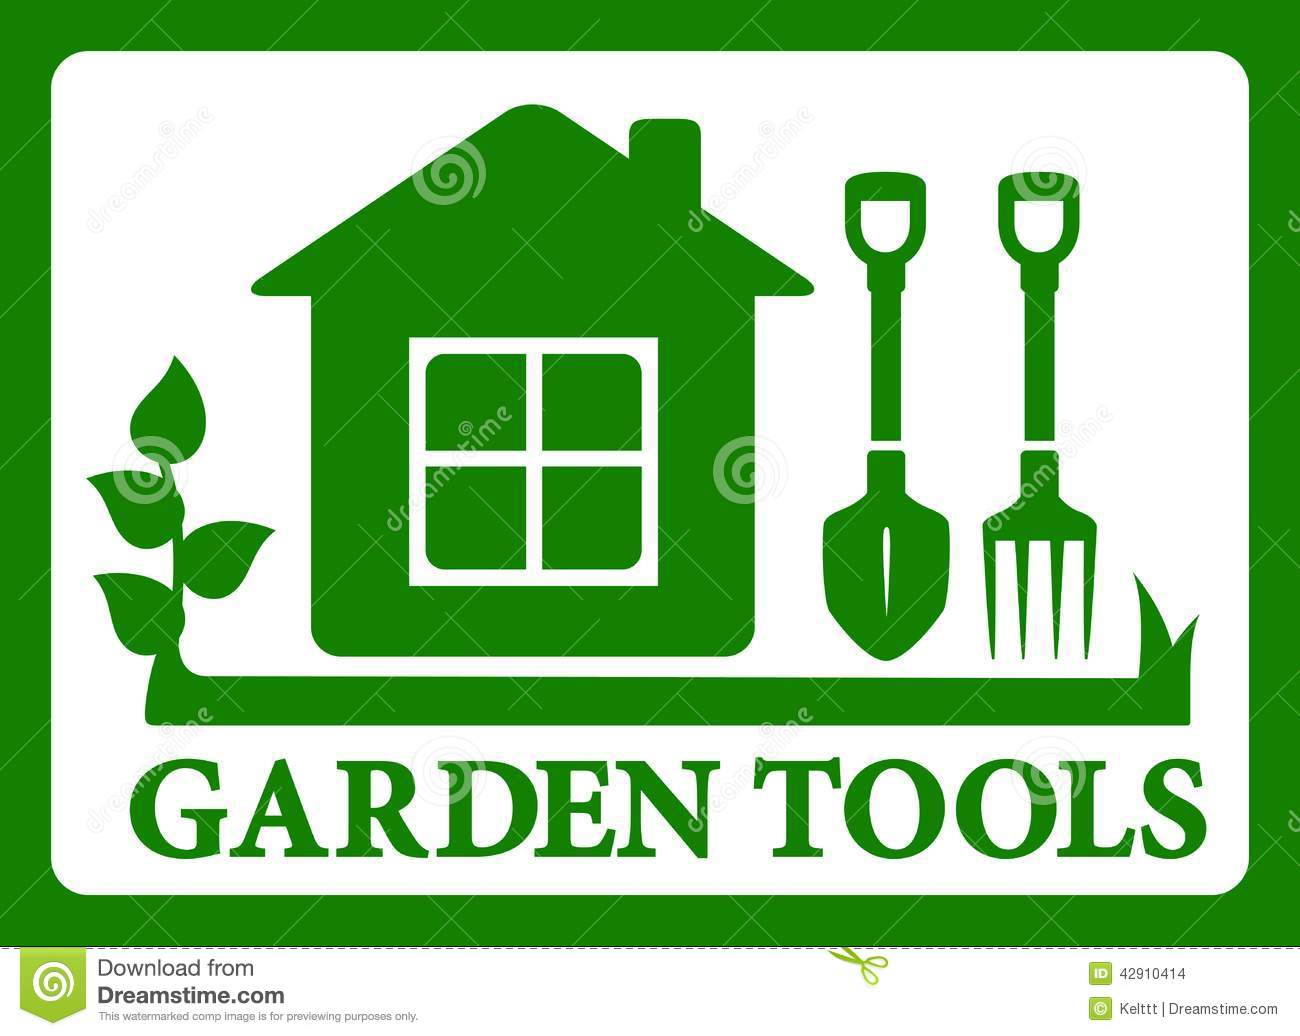 Garden dreams landscaping for Gardening tools victoria bc